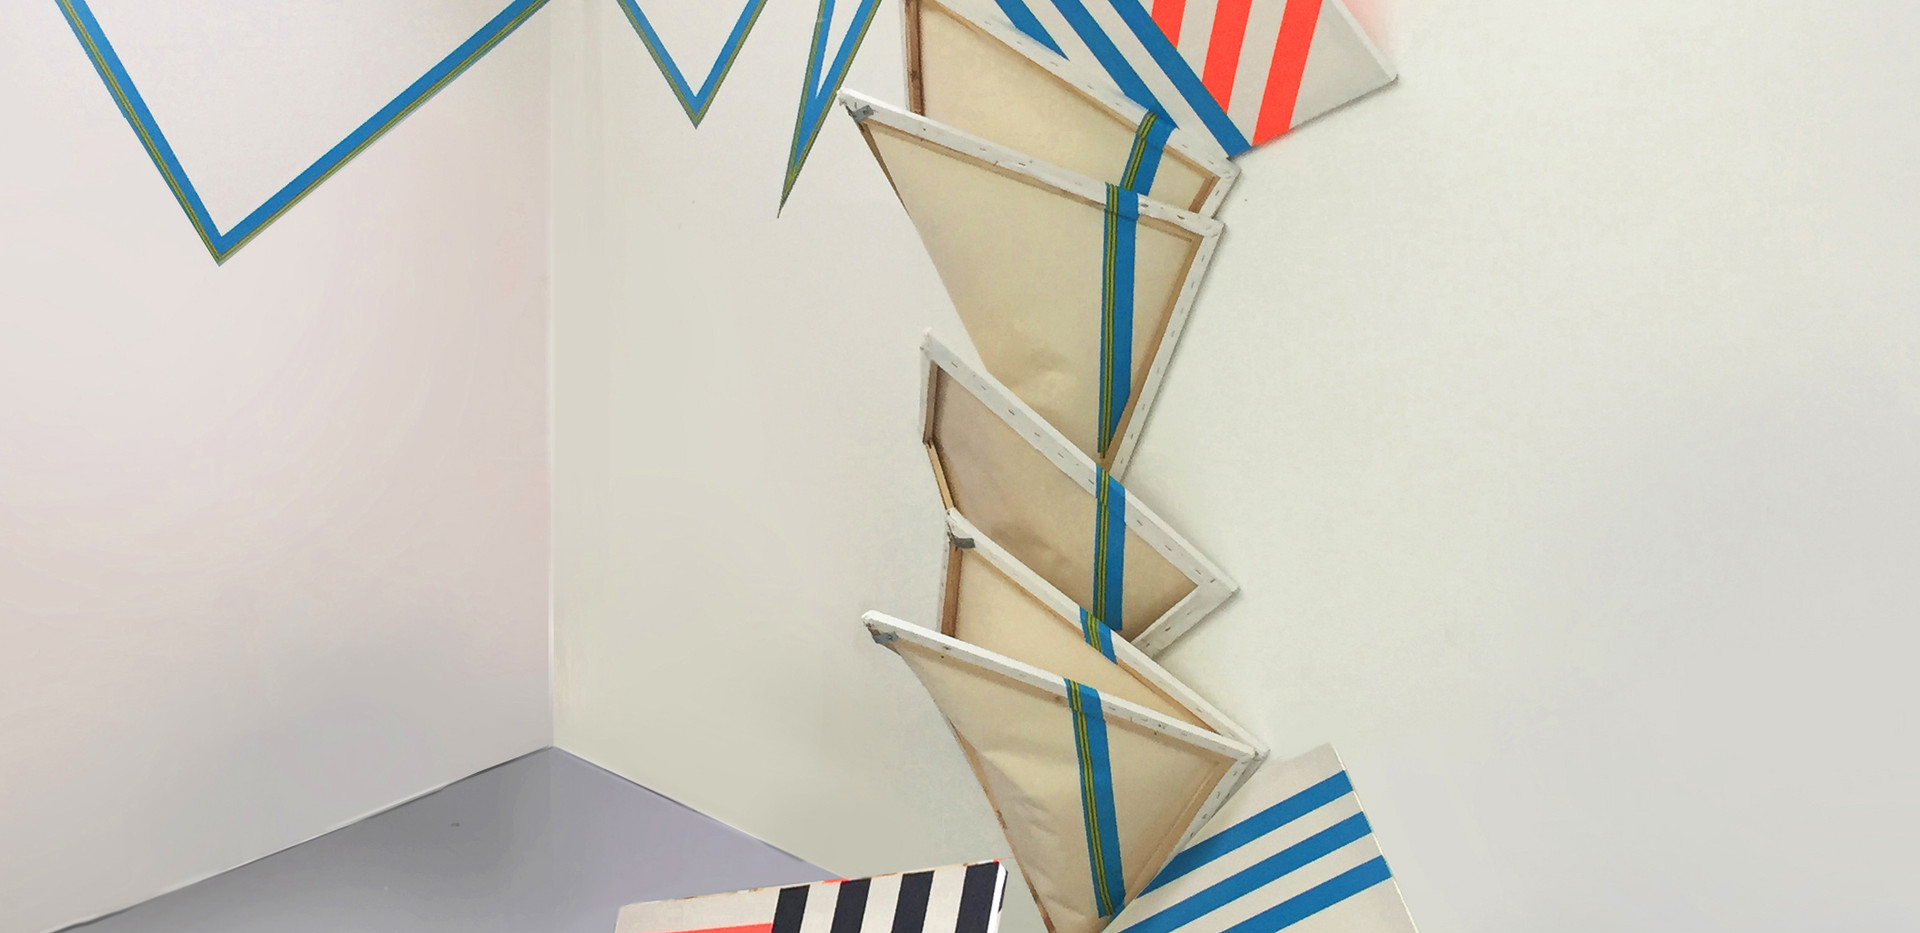 Dazzle Camouflage install